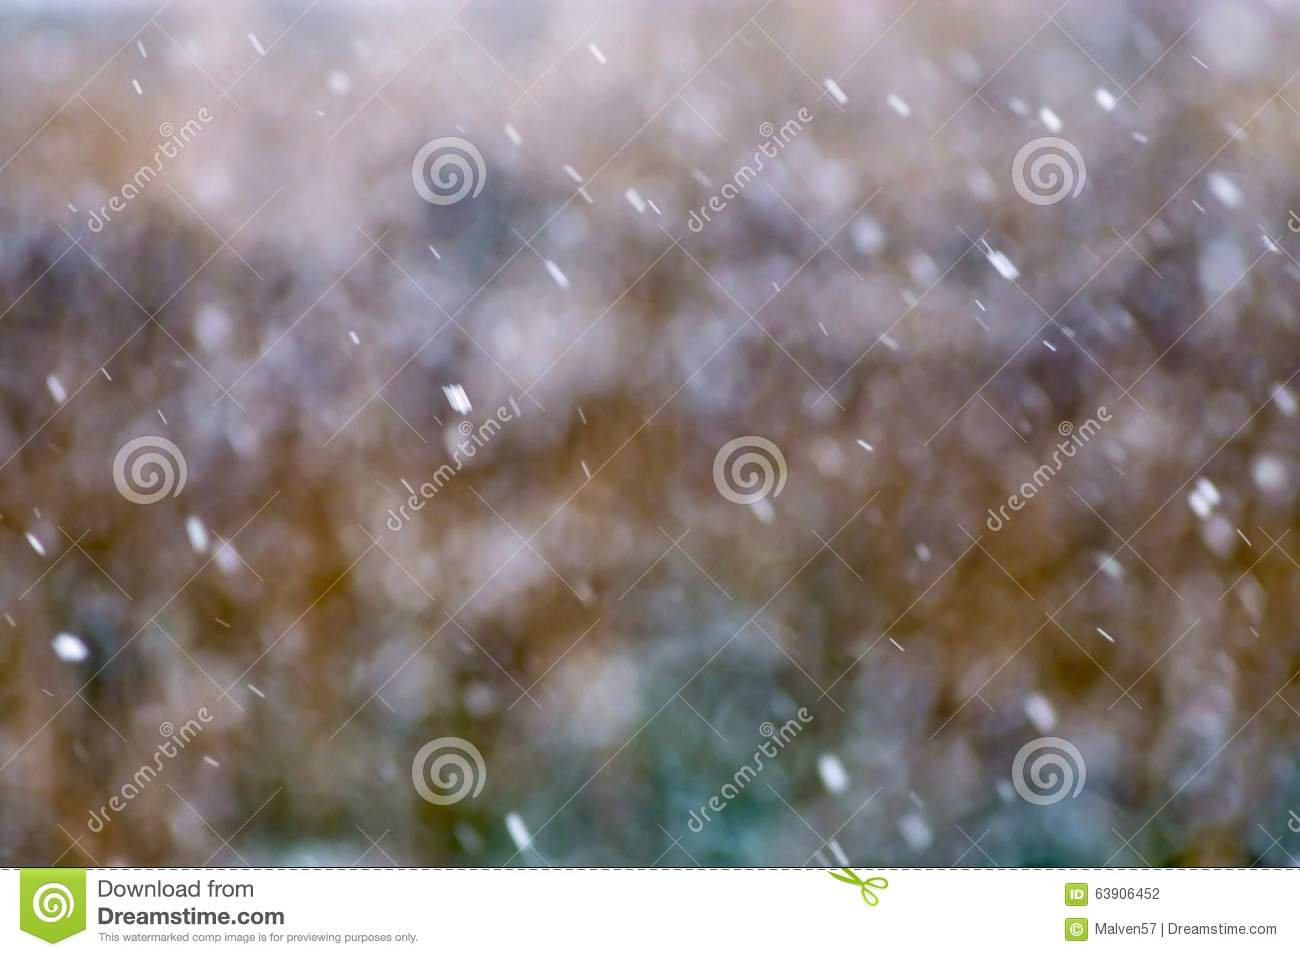 Abstract indistinct speckled or the spotty textured background in pale opaque tones